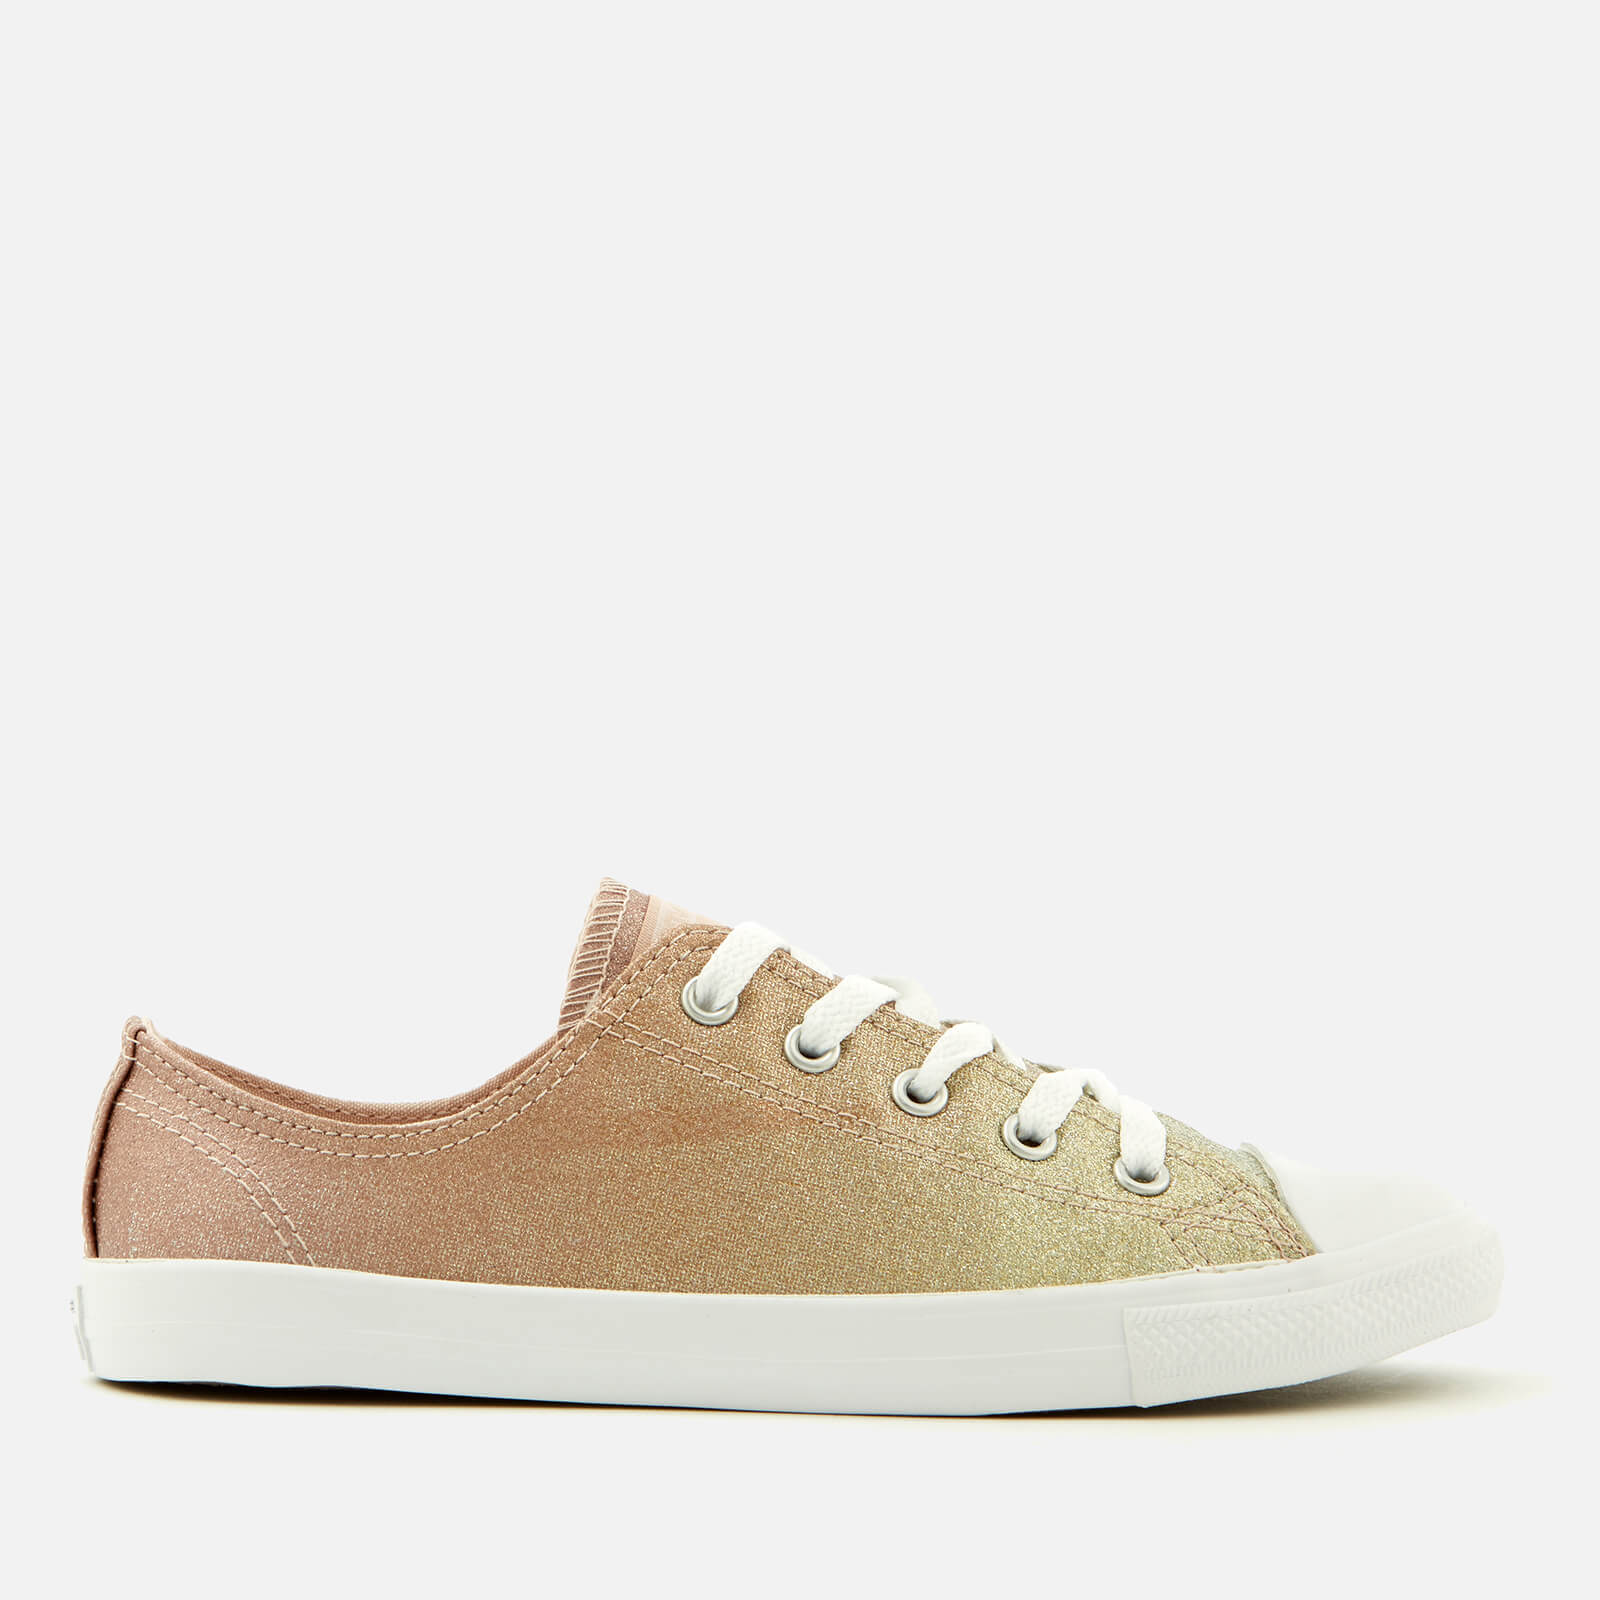 fb3088411f925a Converse Women s Chuck Taylor All Star Dainty Ox Trainers - Gold Particle  Beige White Womens Footwear